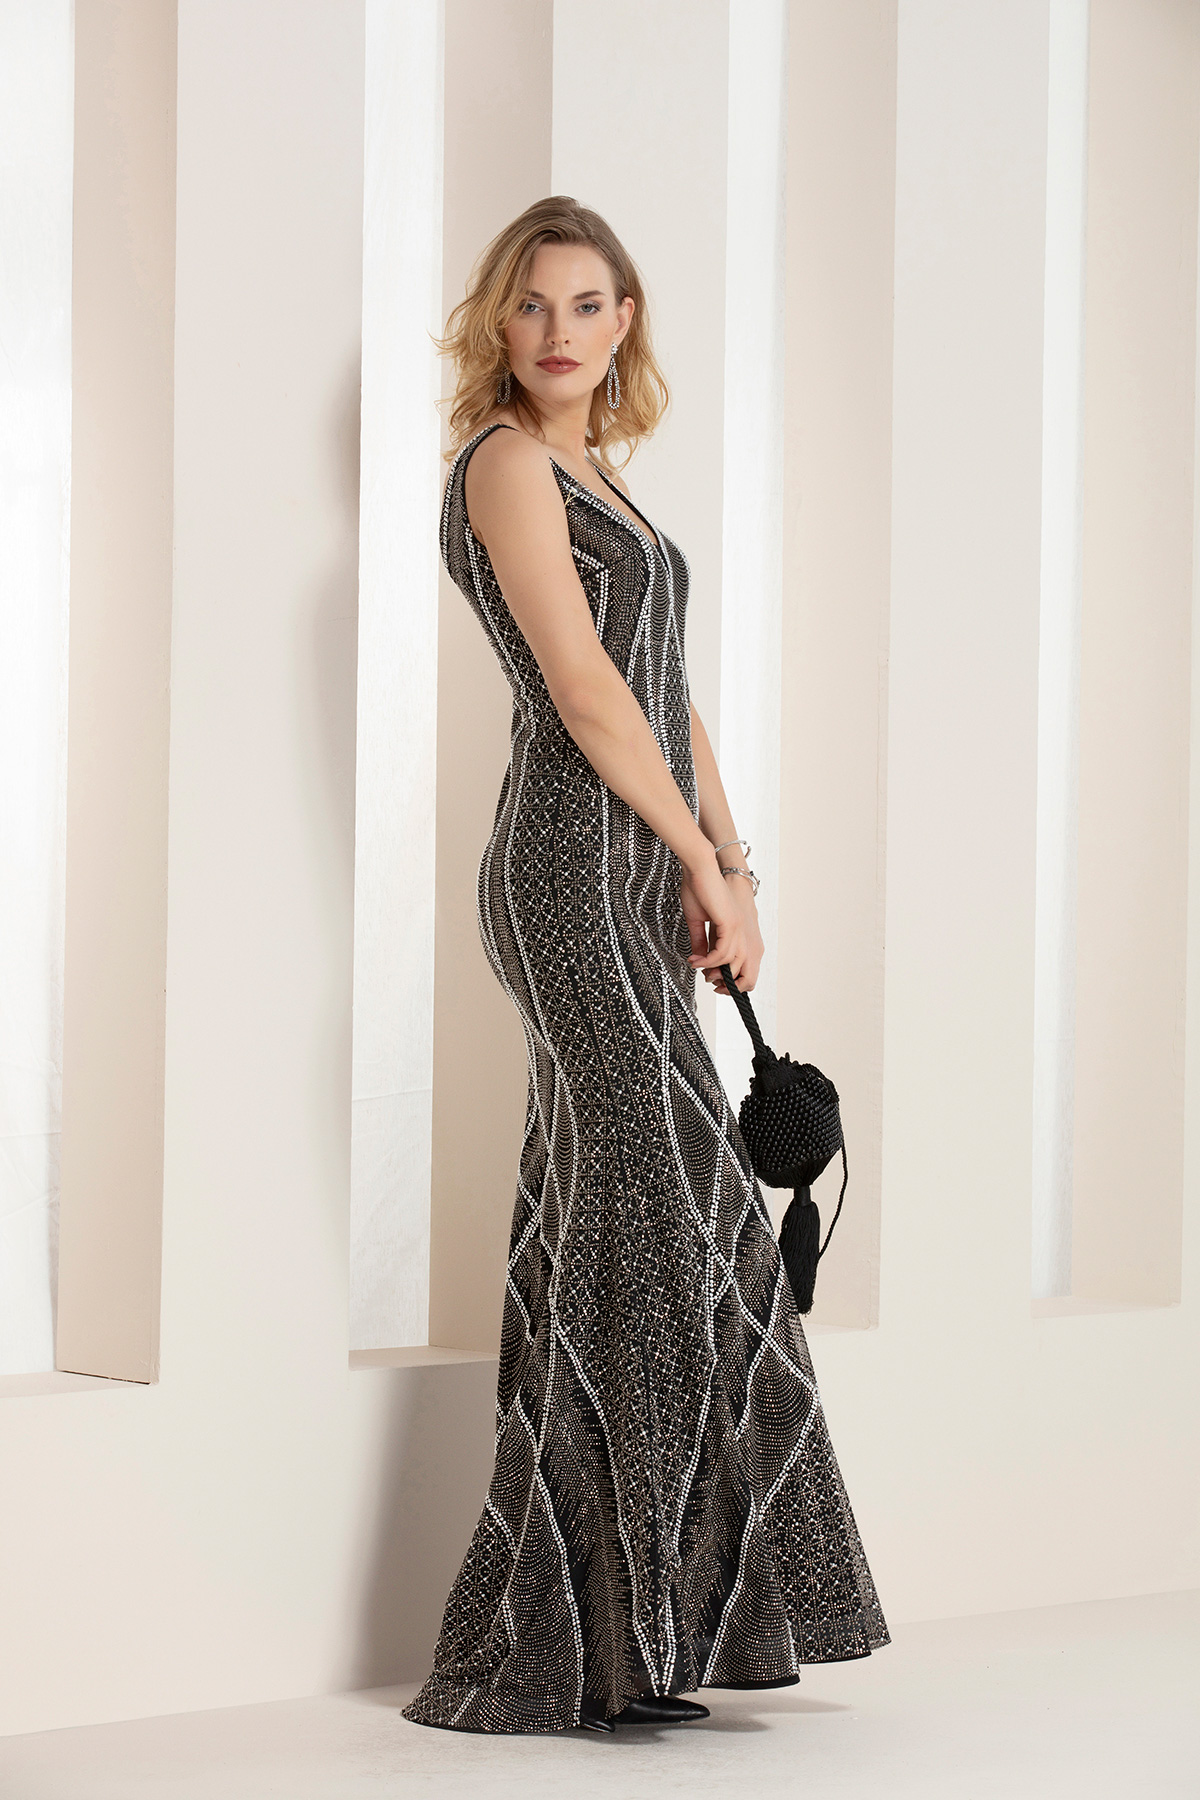 2019-2020 Autumn/Winter Evening Dress Trends